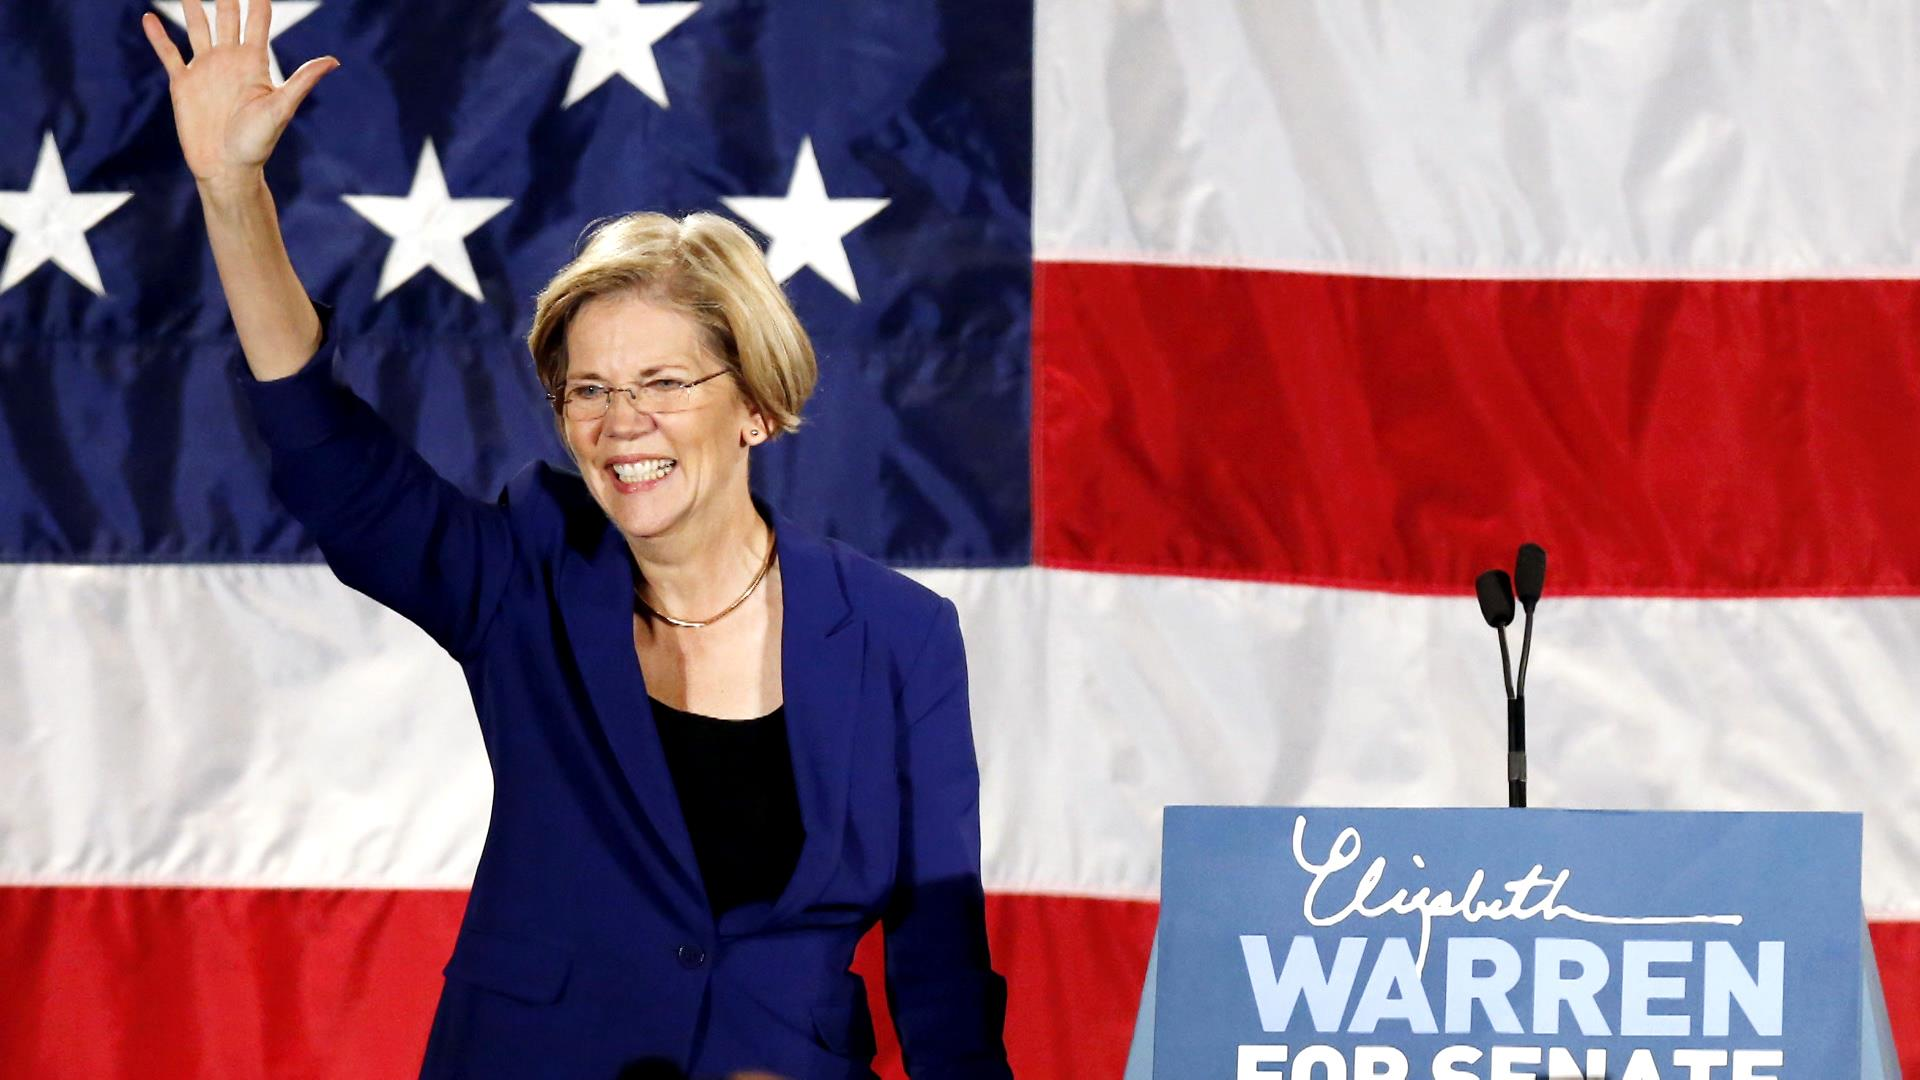 Fact check: Did Elizabeth Warren lie about her heritage?